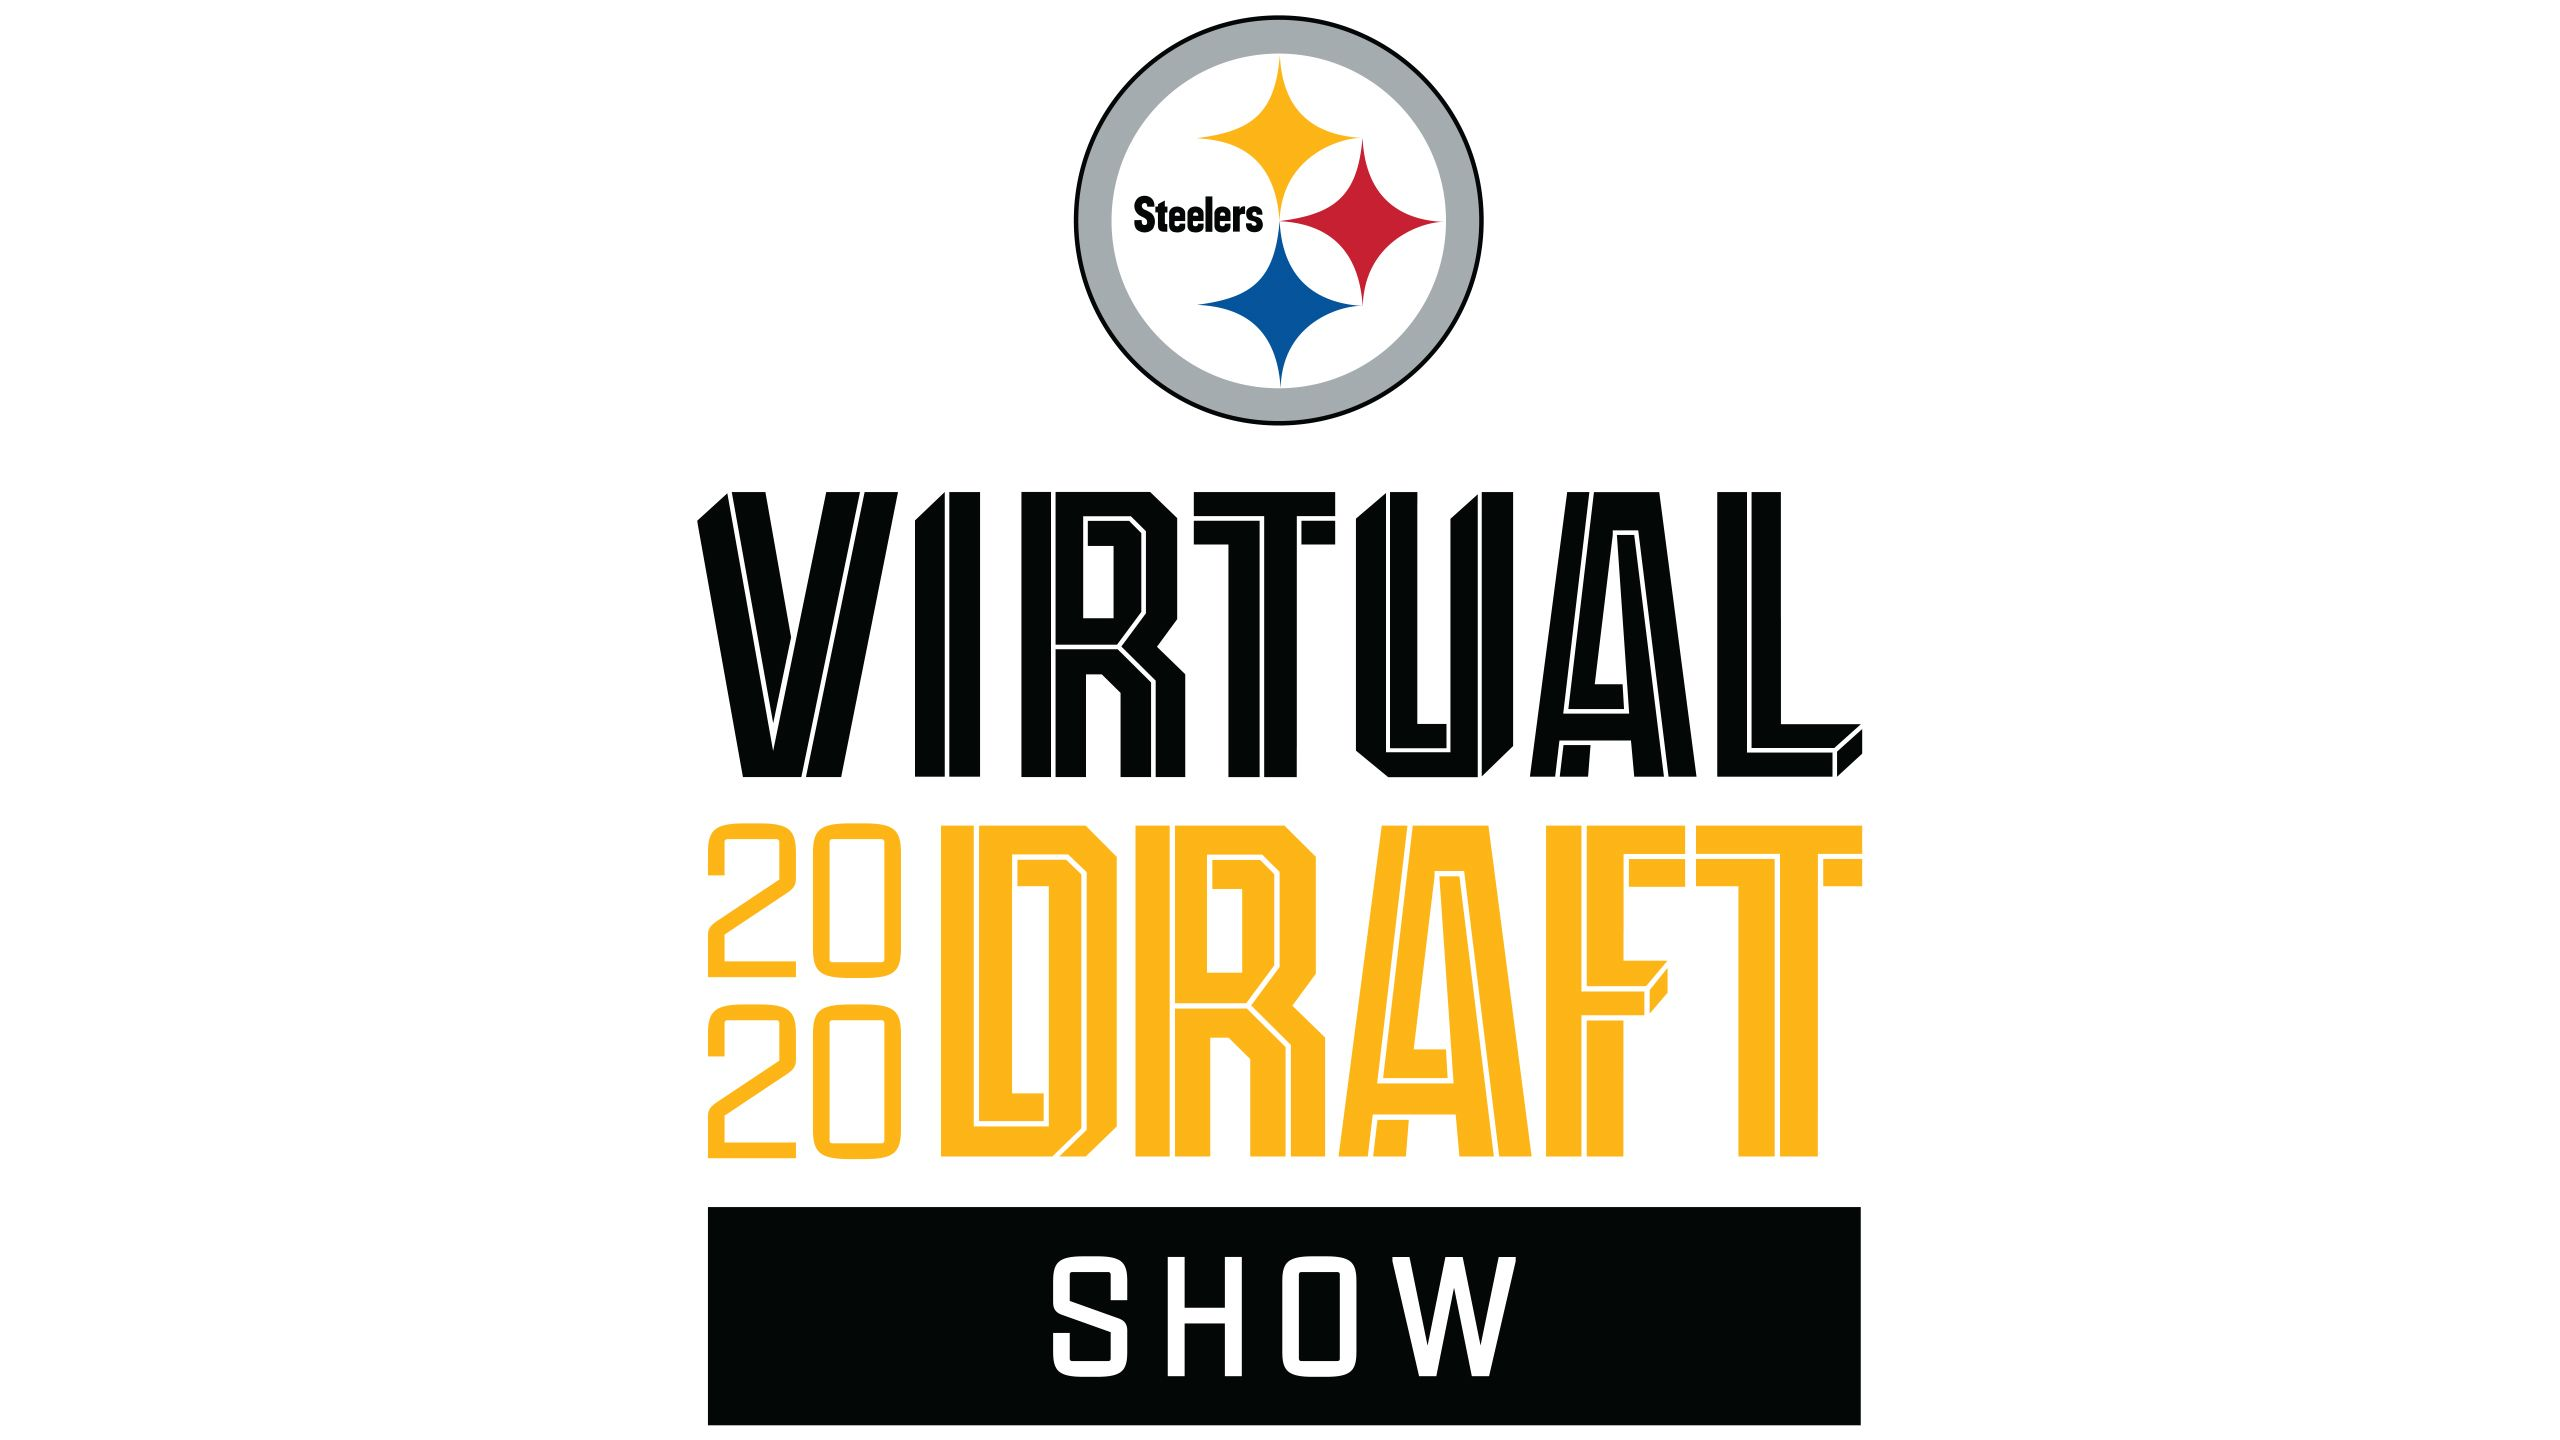 Steelers Virtual Draft Show